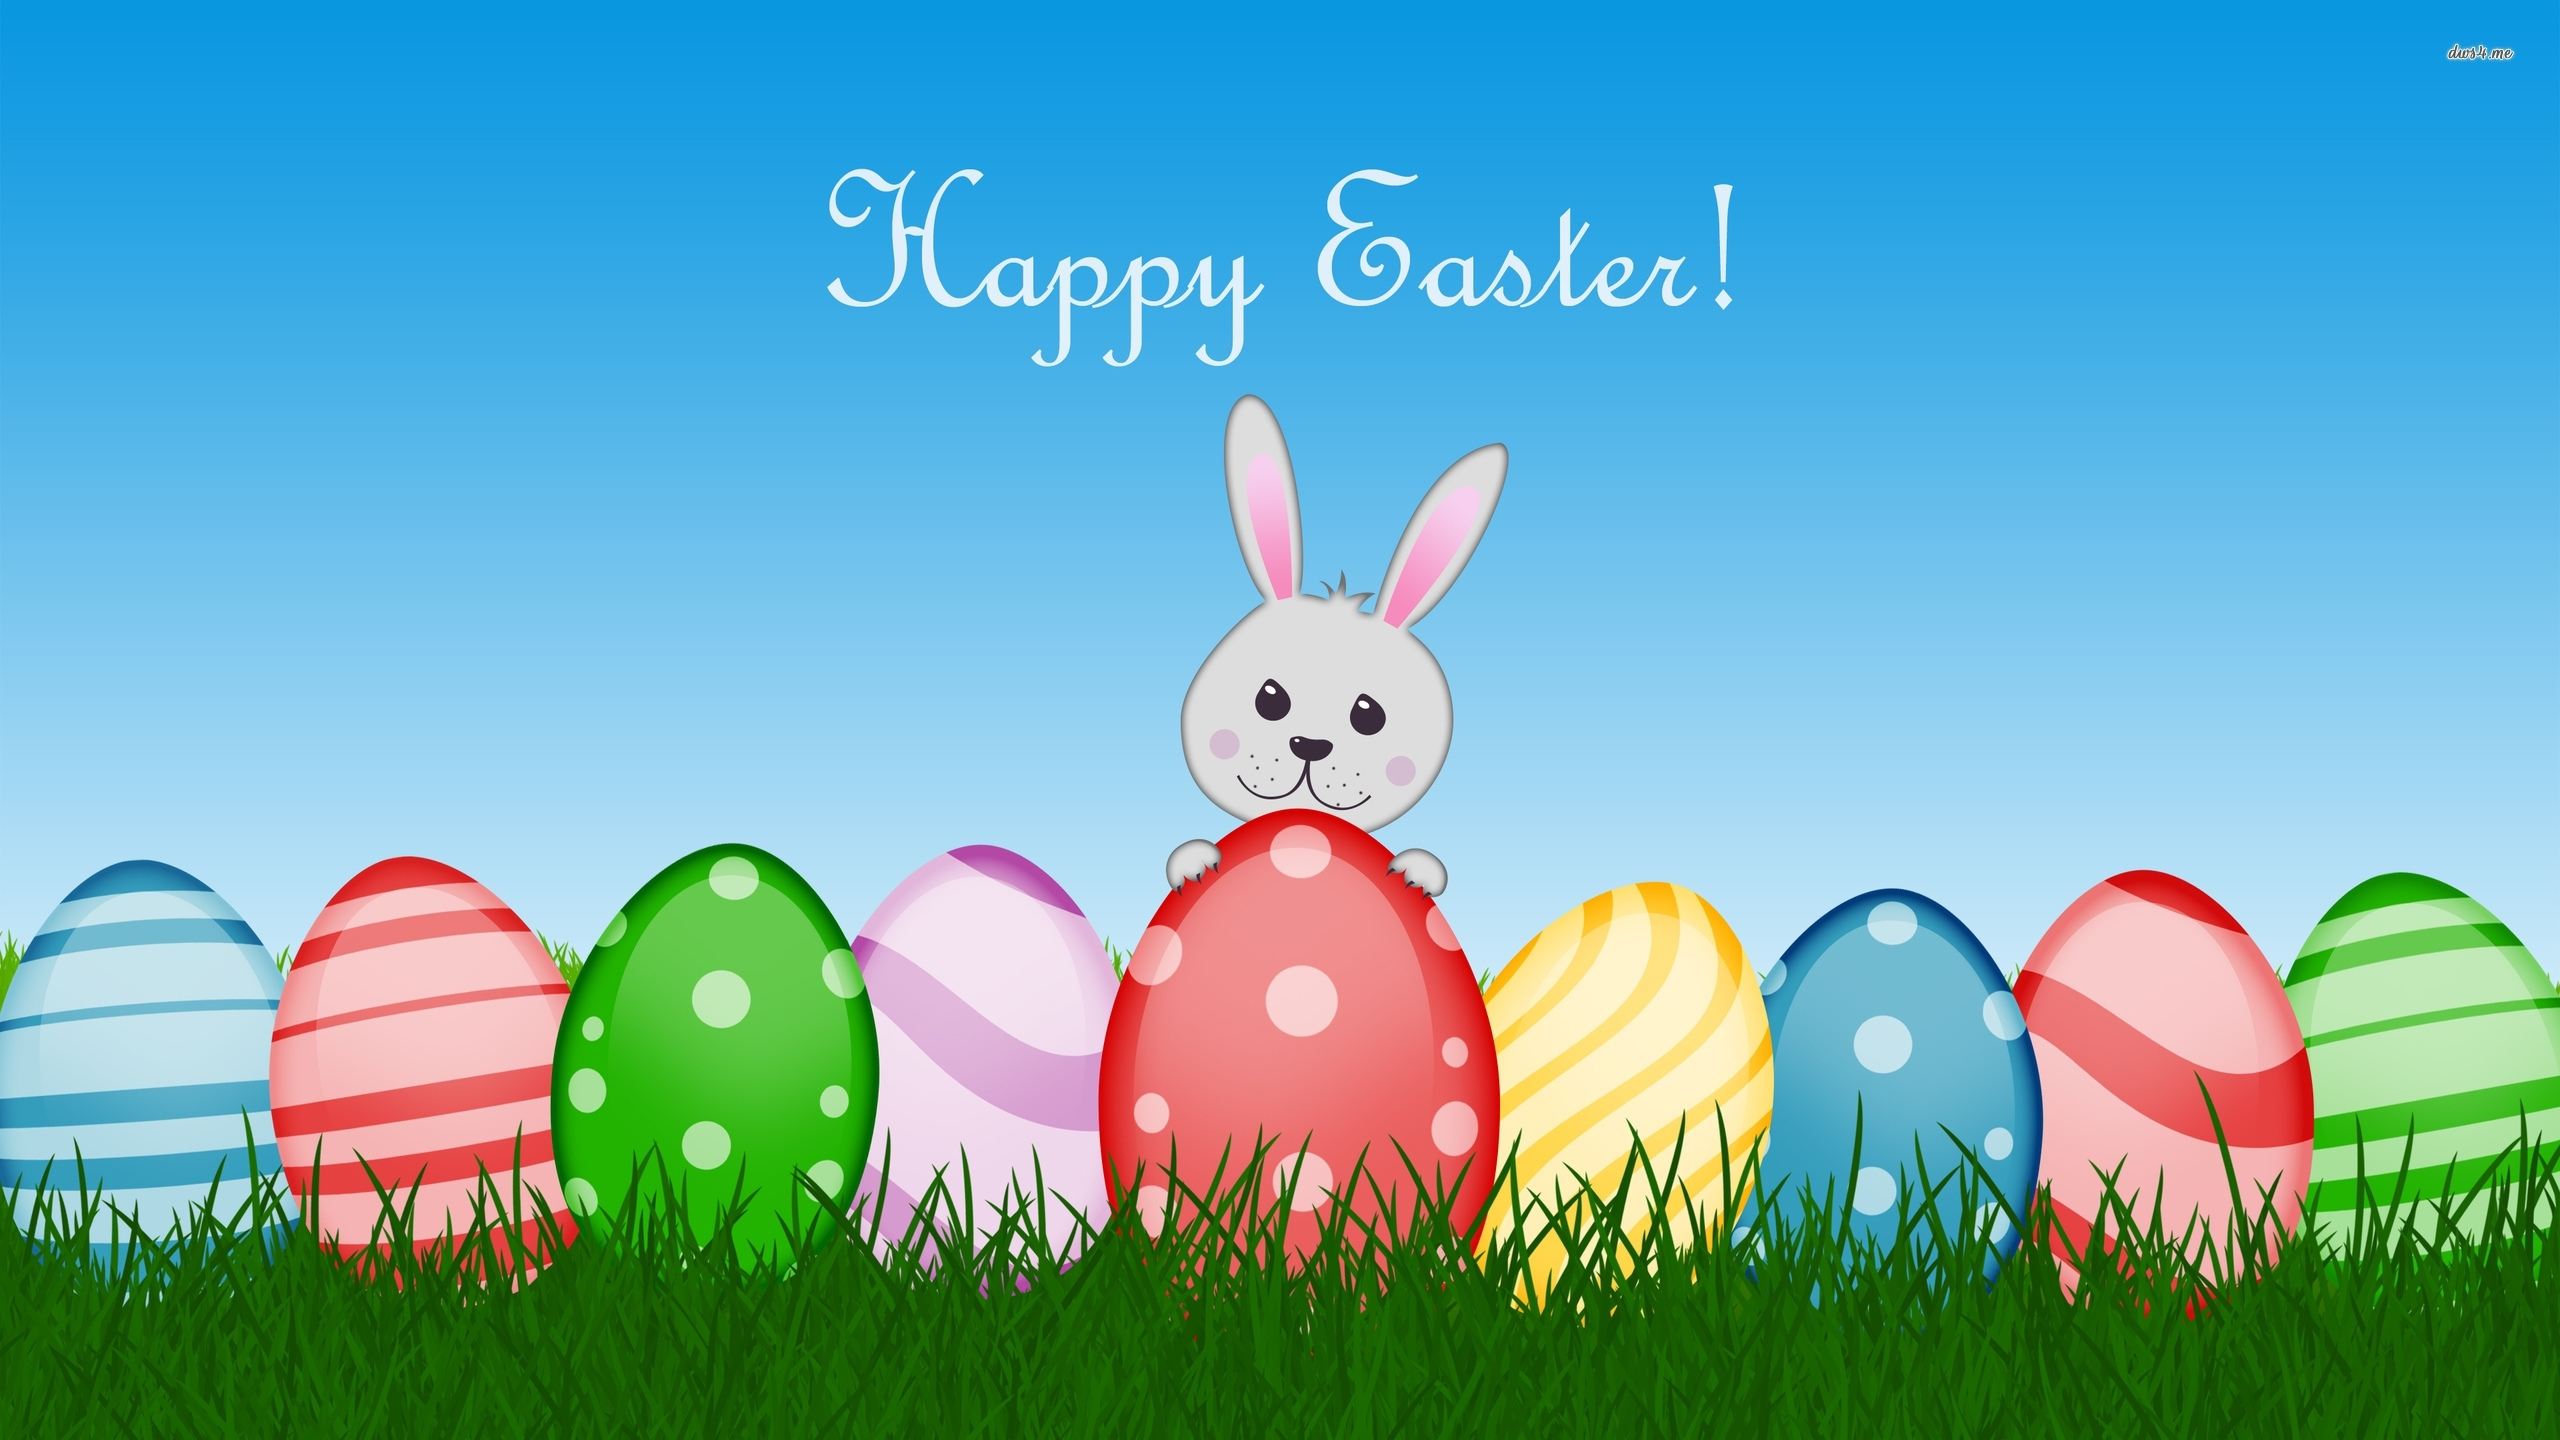 happy easter backgroundjpg - media file | pixelstalk